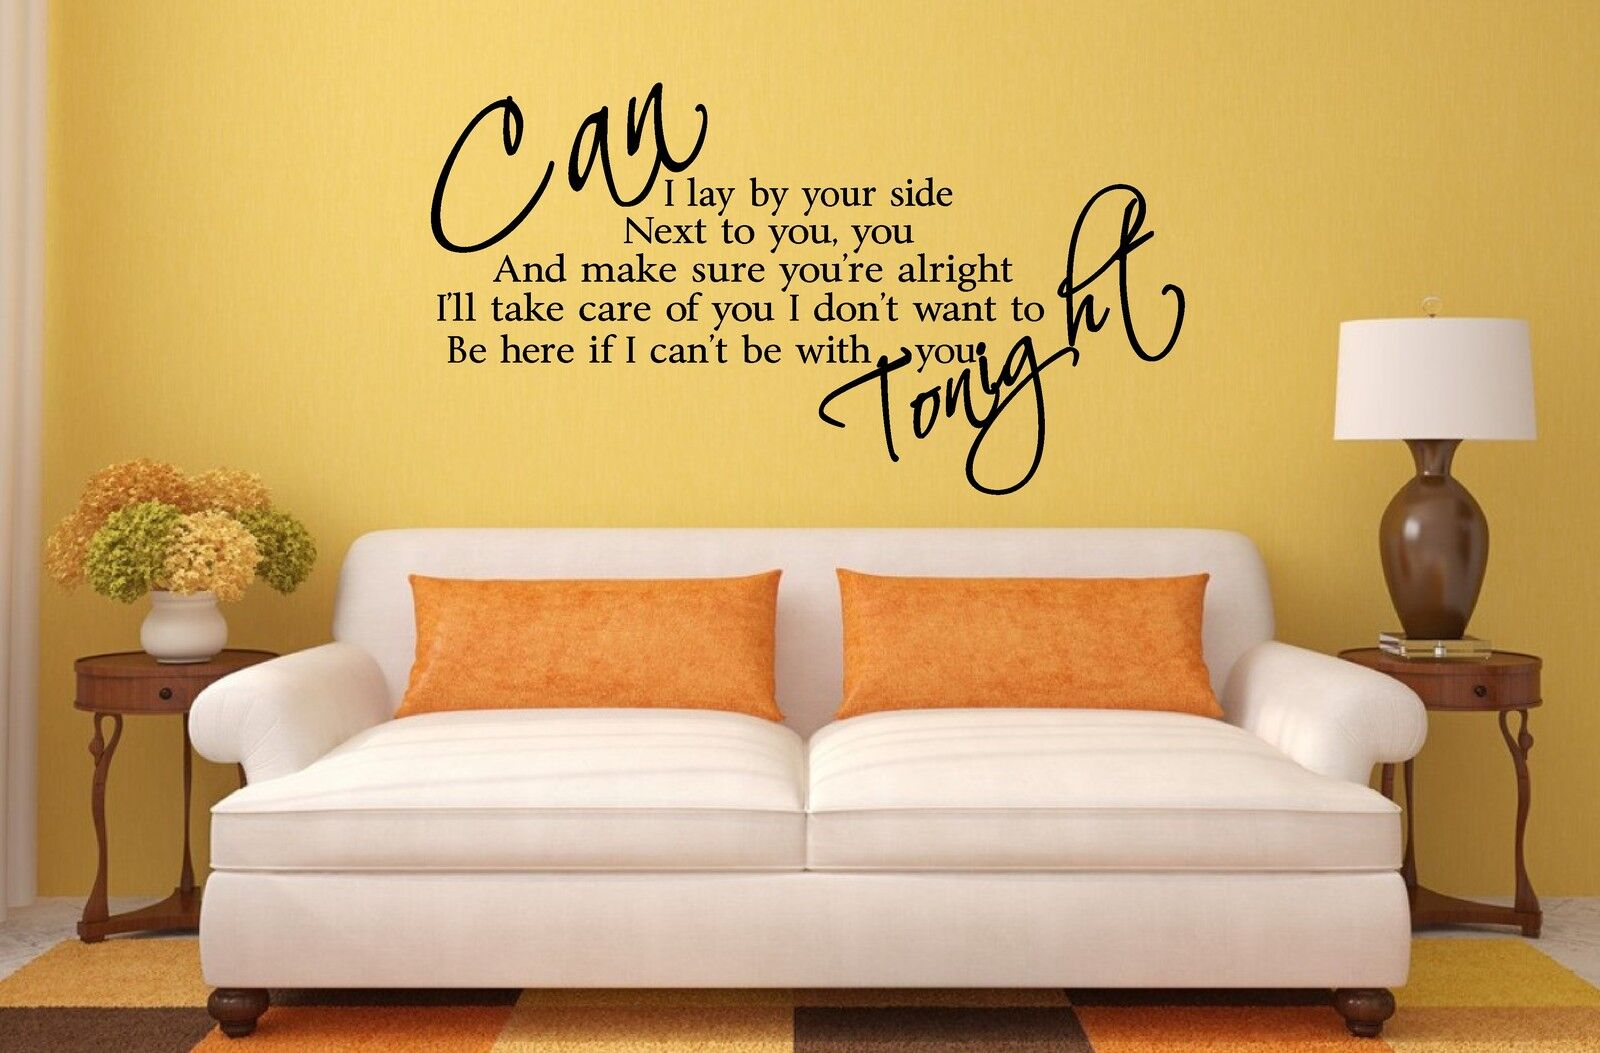 Wall Decals & Stickers , Home Decor , Home, Furniture & DIY